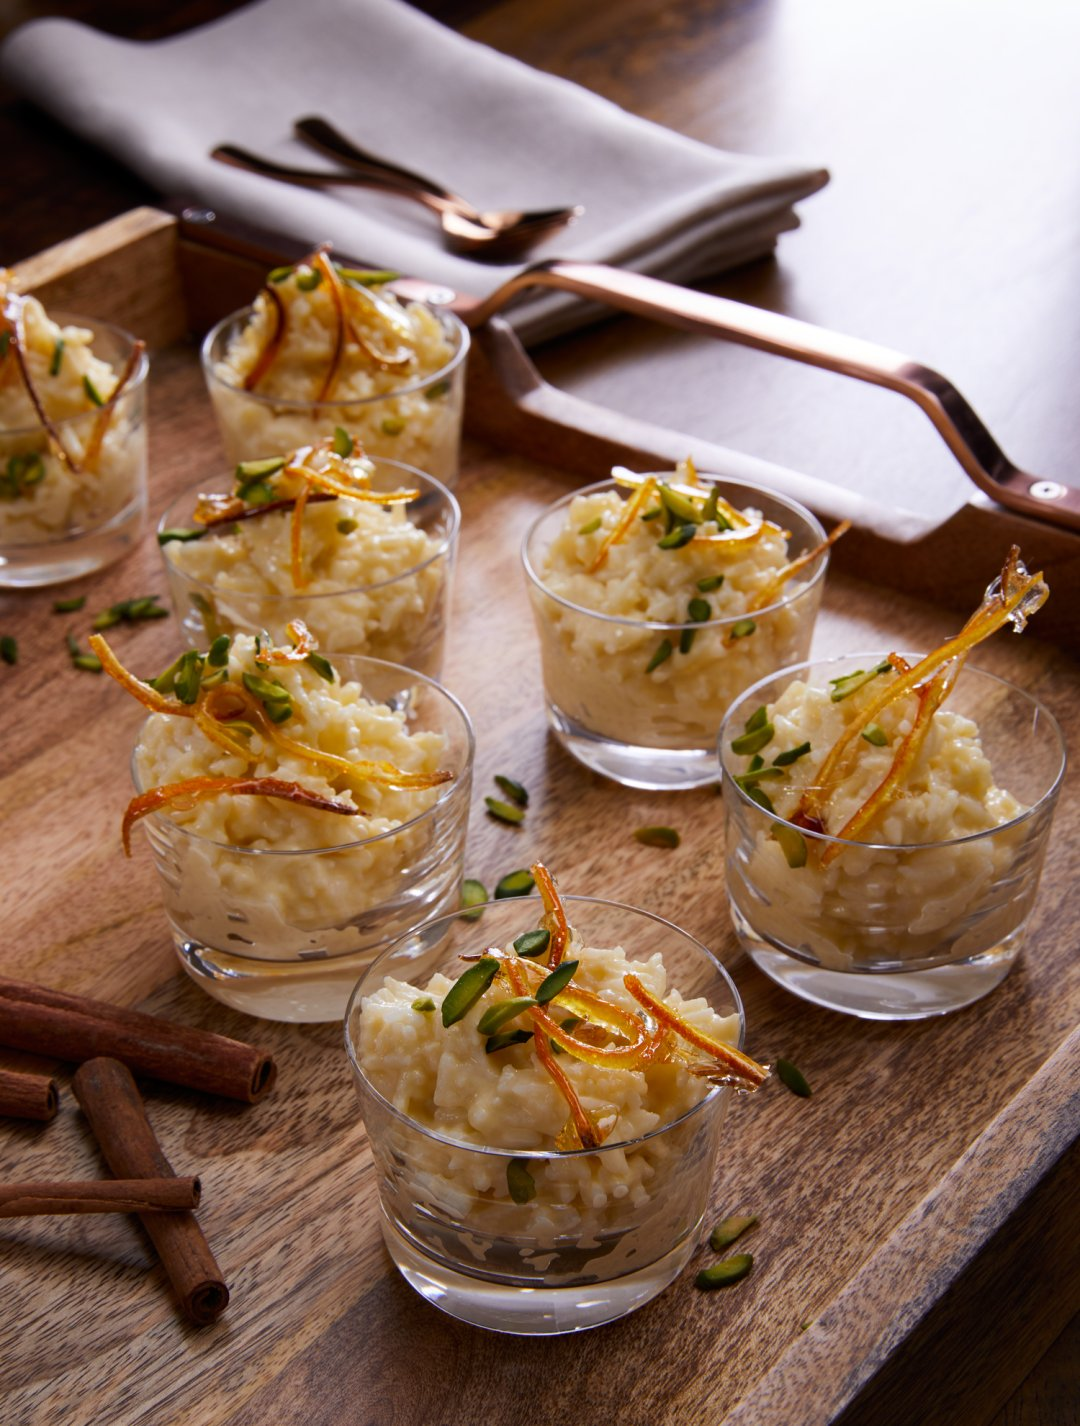 Basmati Rice Budding served up in small glass bowls on a serving tray